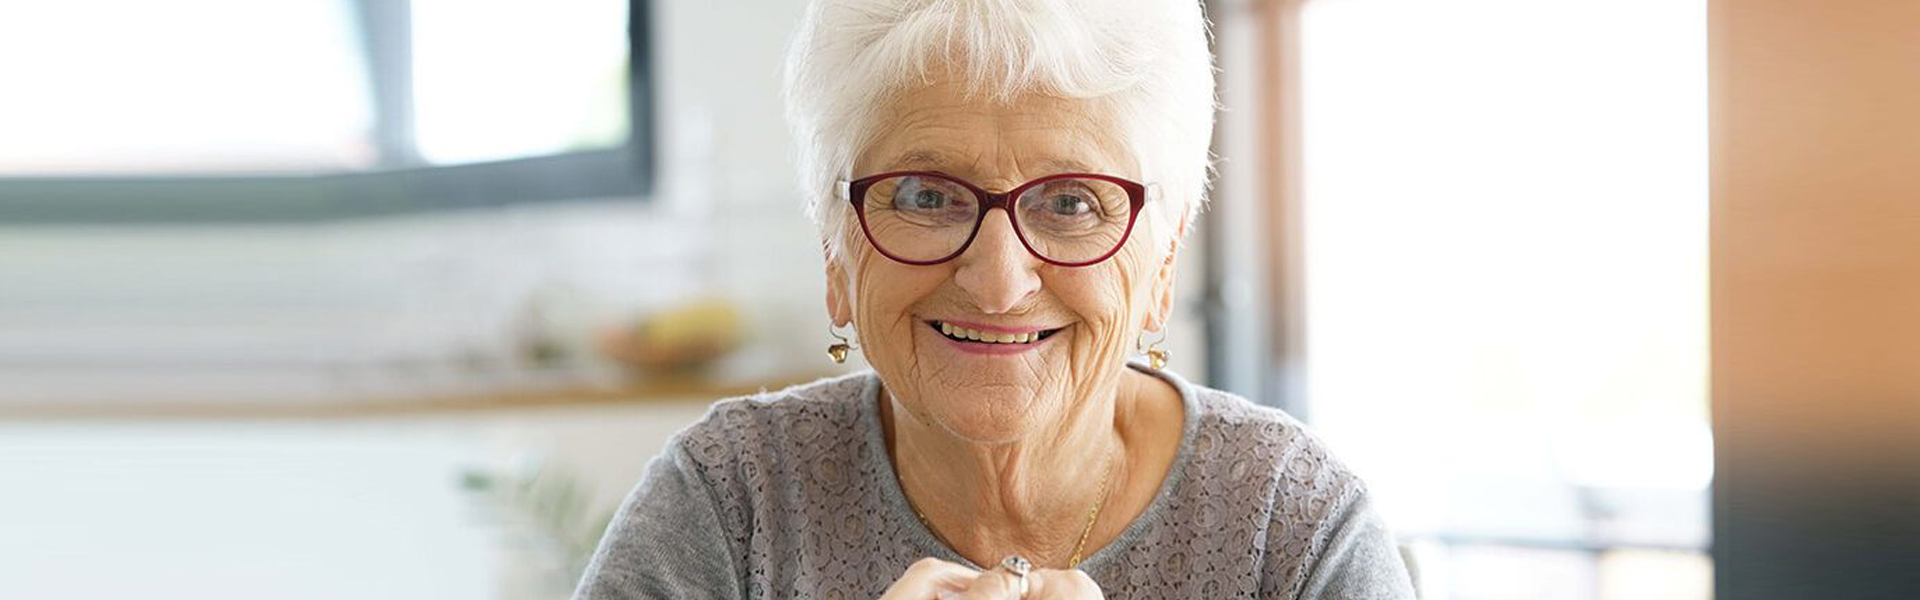 Removable & Fixed Dentures in Houston